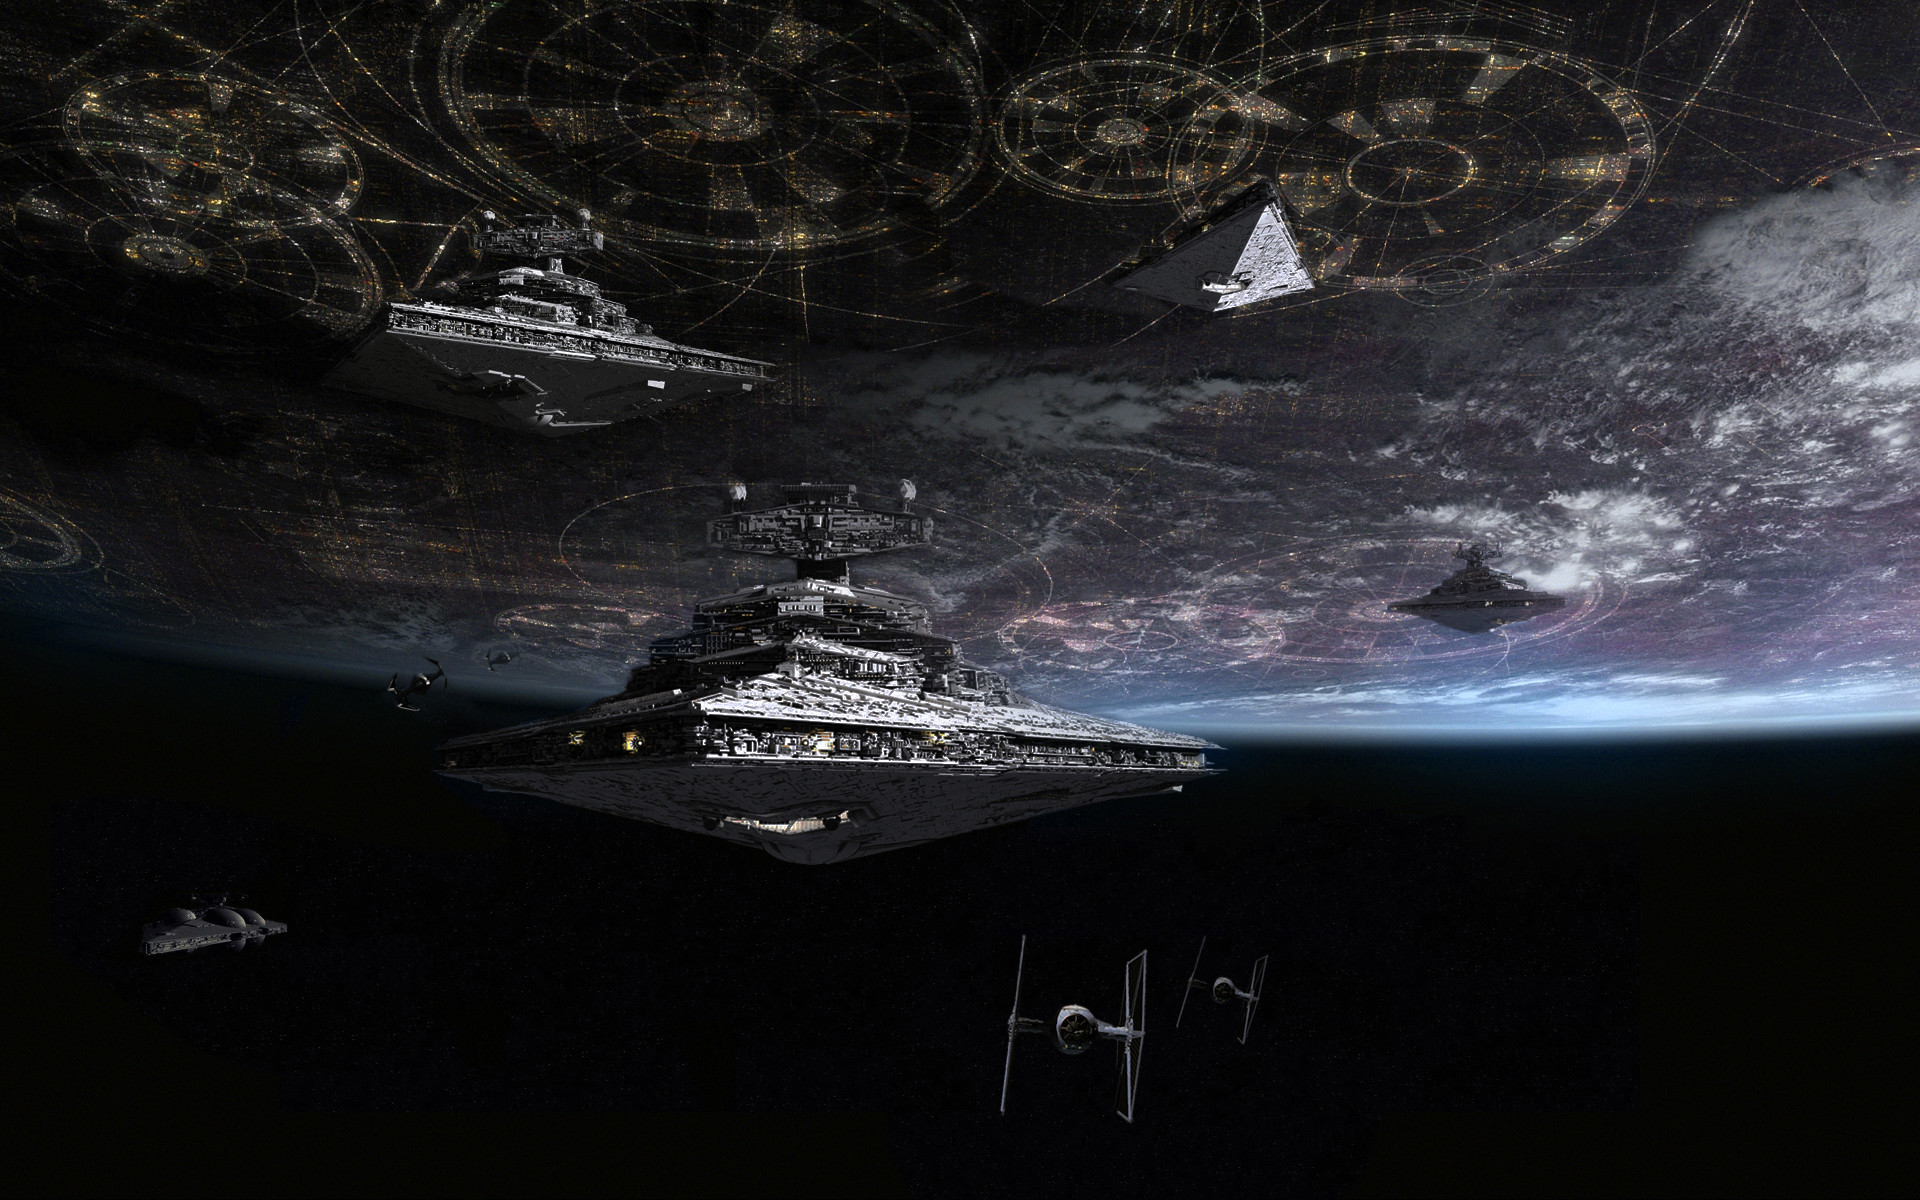 Star Destroyer Wallpaper Hd Posted By John Sellers